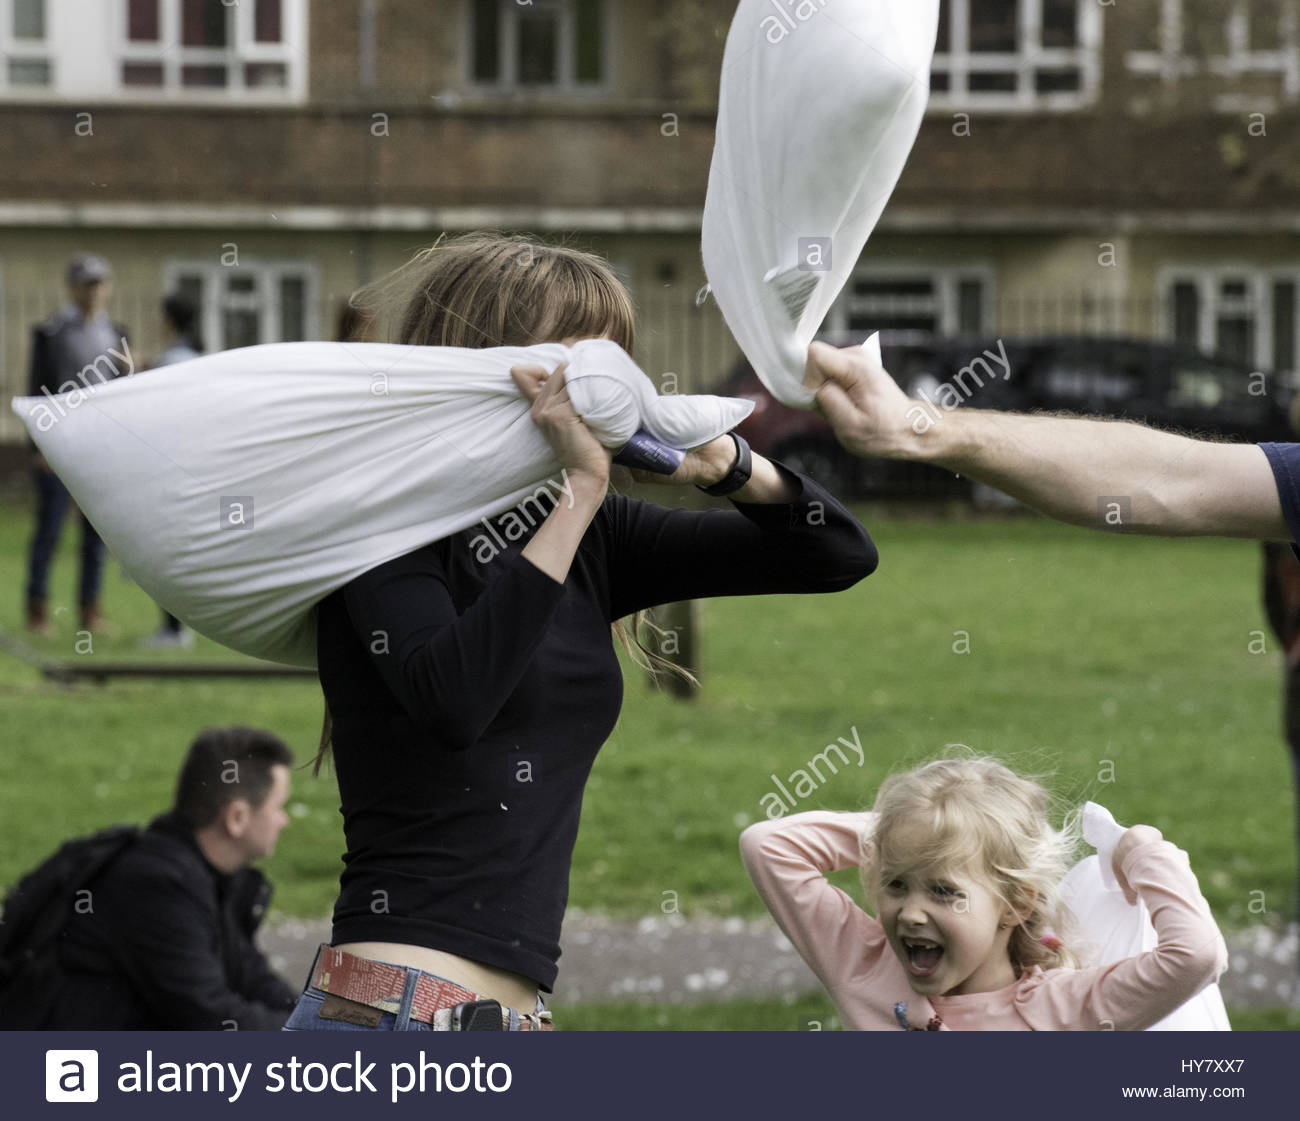 London, UK. 1st Apr, 2017. People participate in a pillow fight at Kennington Park in London on April 1, 2017, International - Stock Image